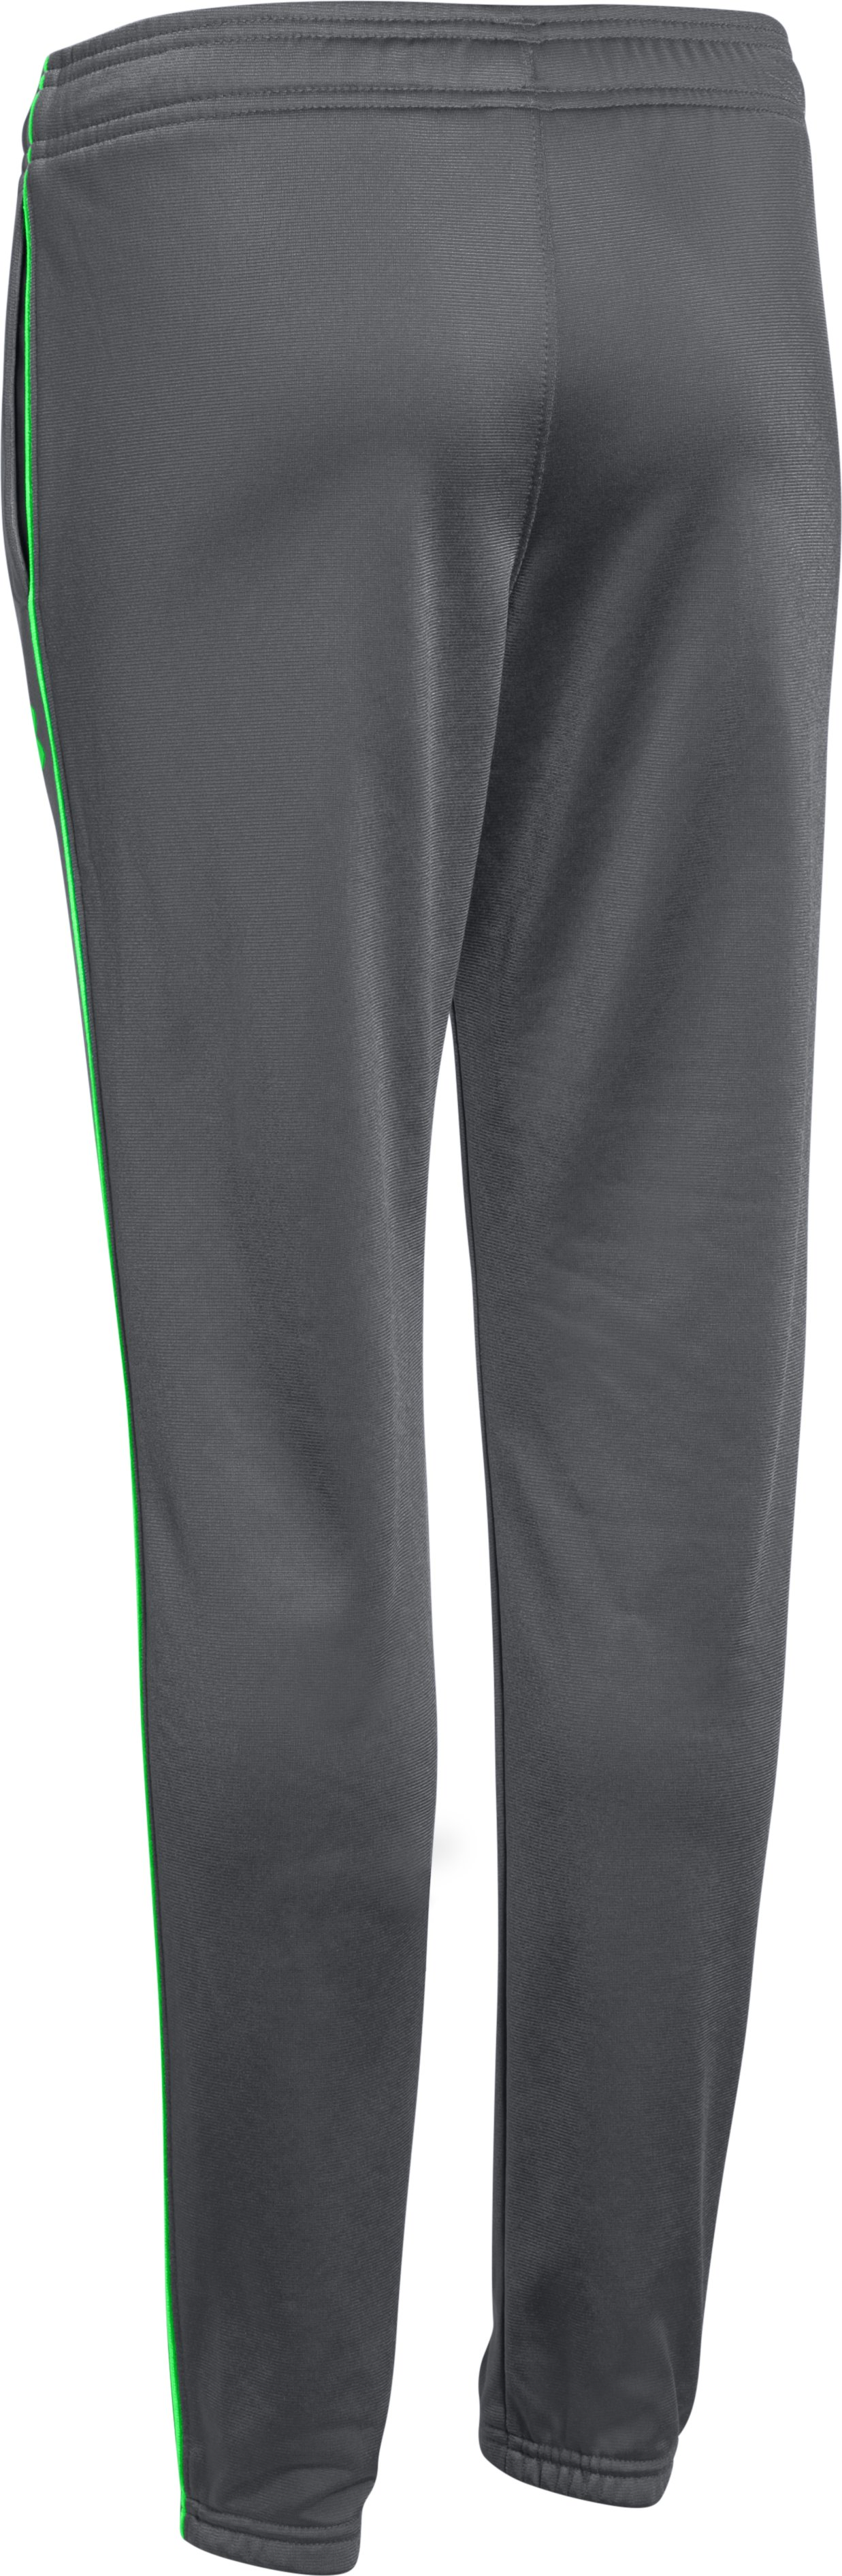 Boys' UA Contender Tapered Warm-Up Pants, Graphite